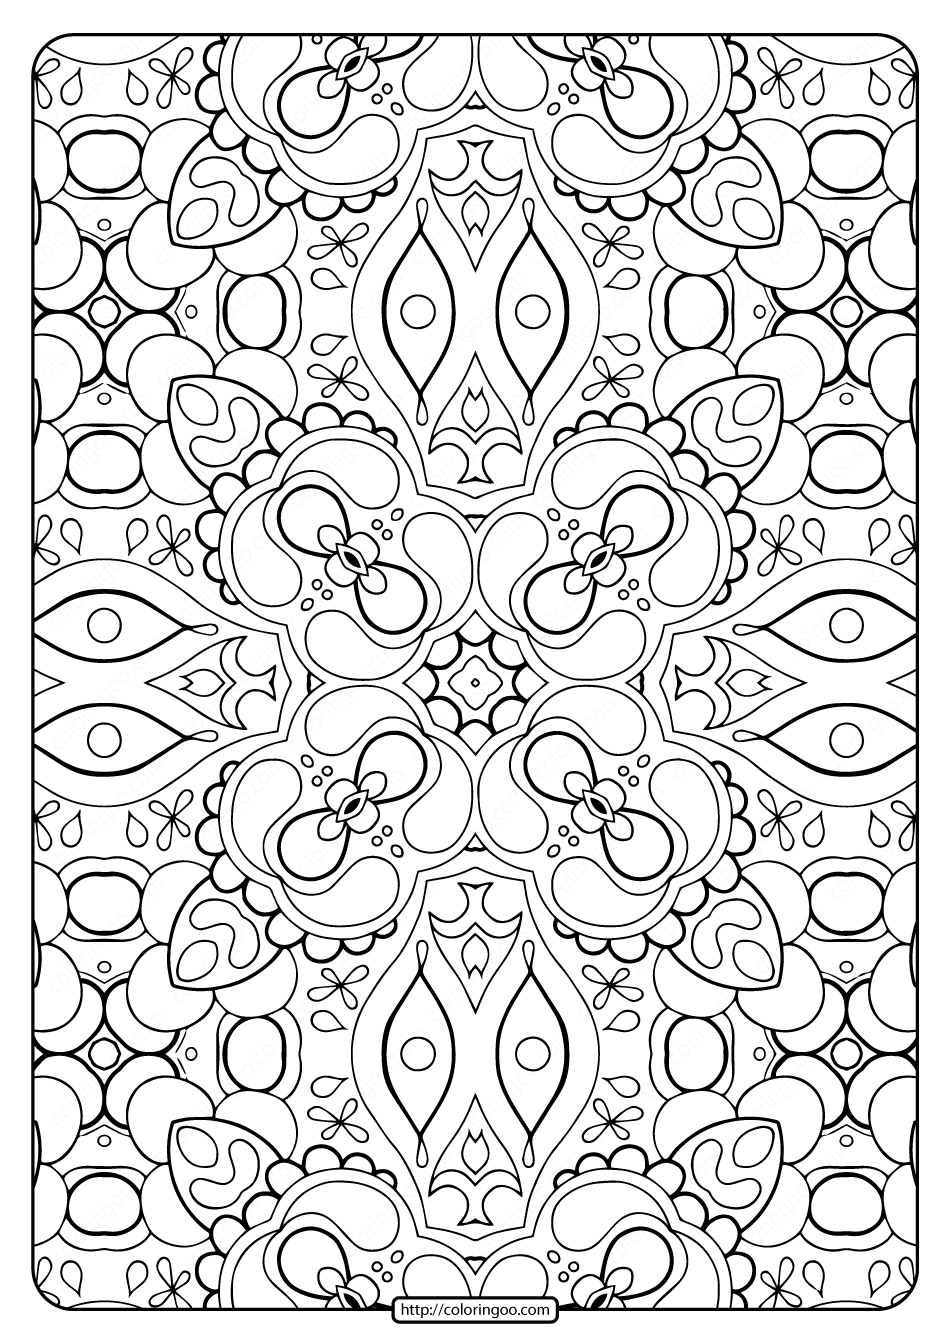 colouring pages to print free incredibles coloring pages best coloring pages for kids free to colouring print pages